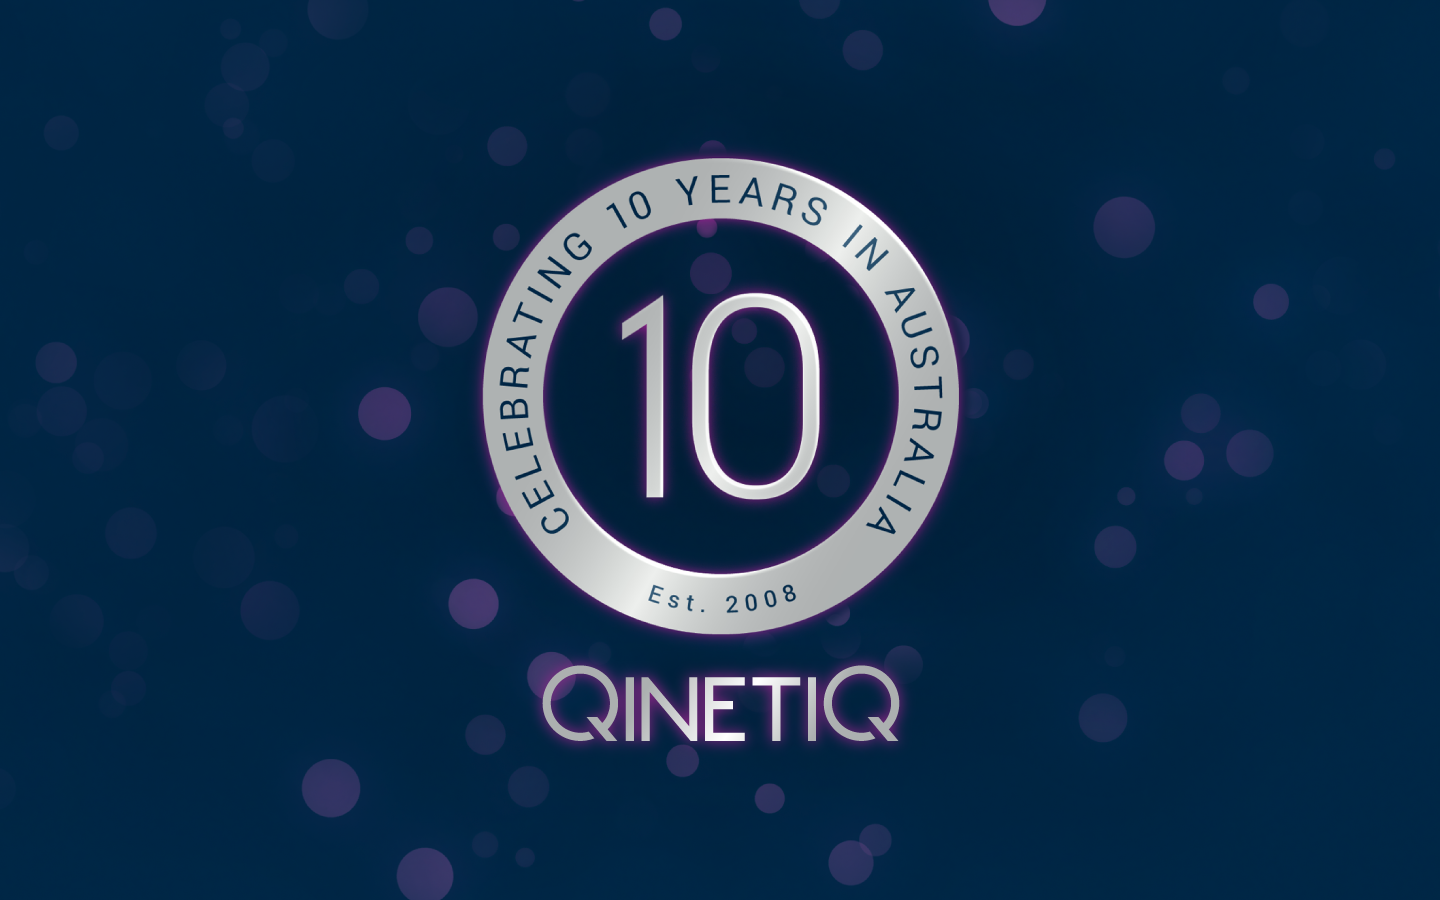 Celebrating 10 years in Australia